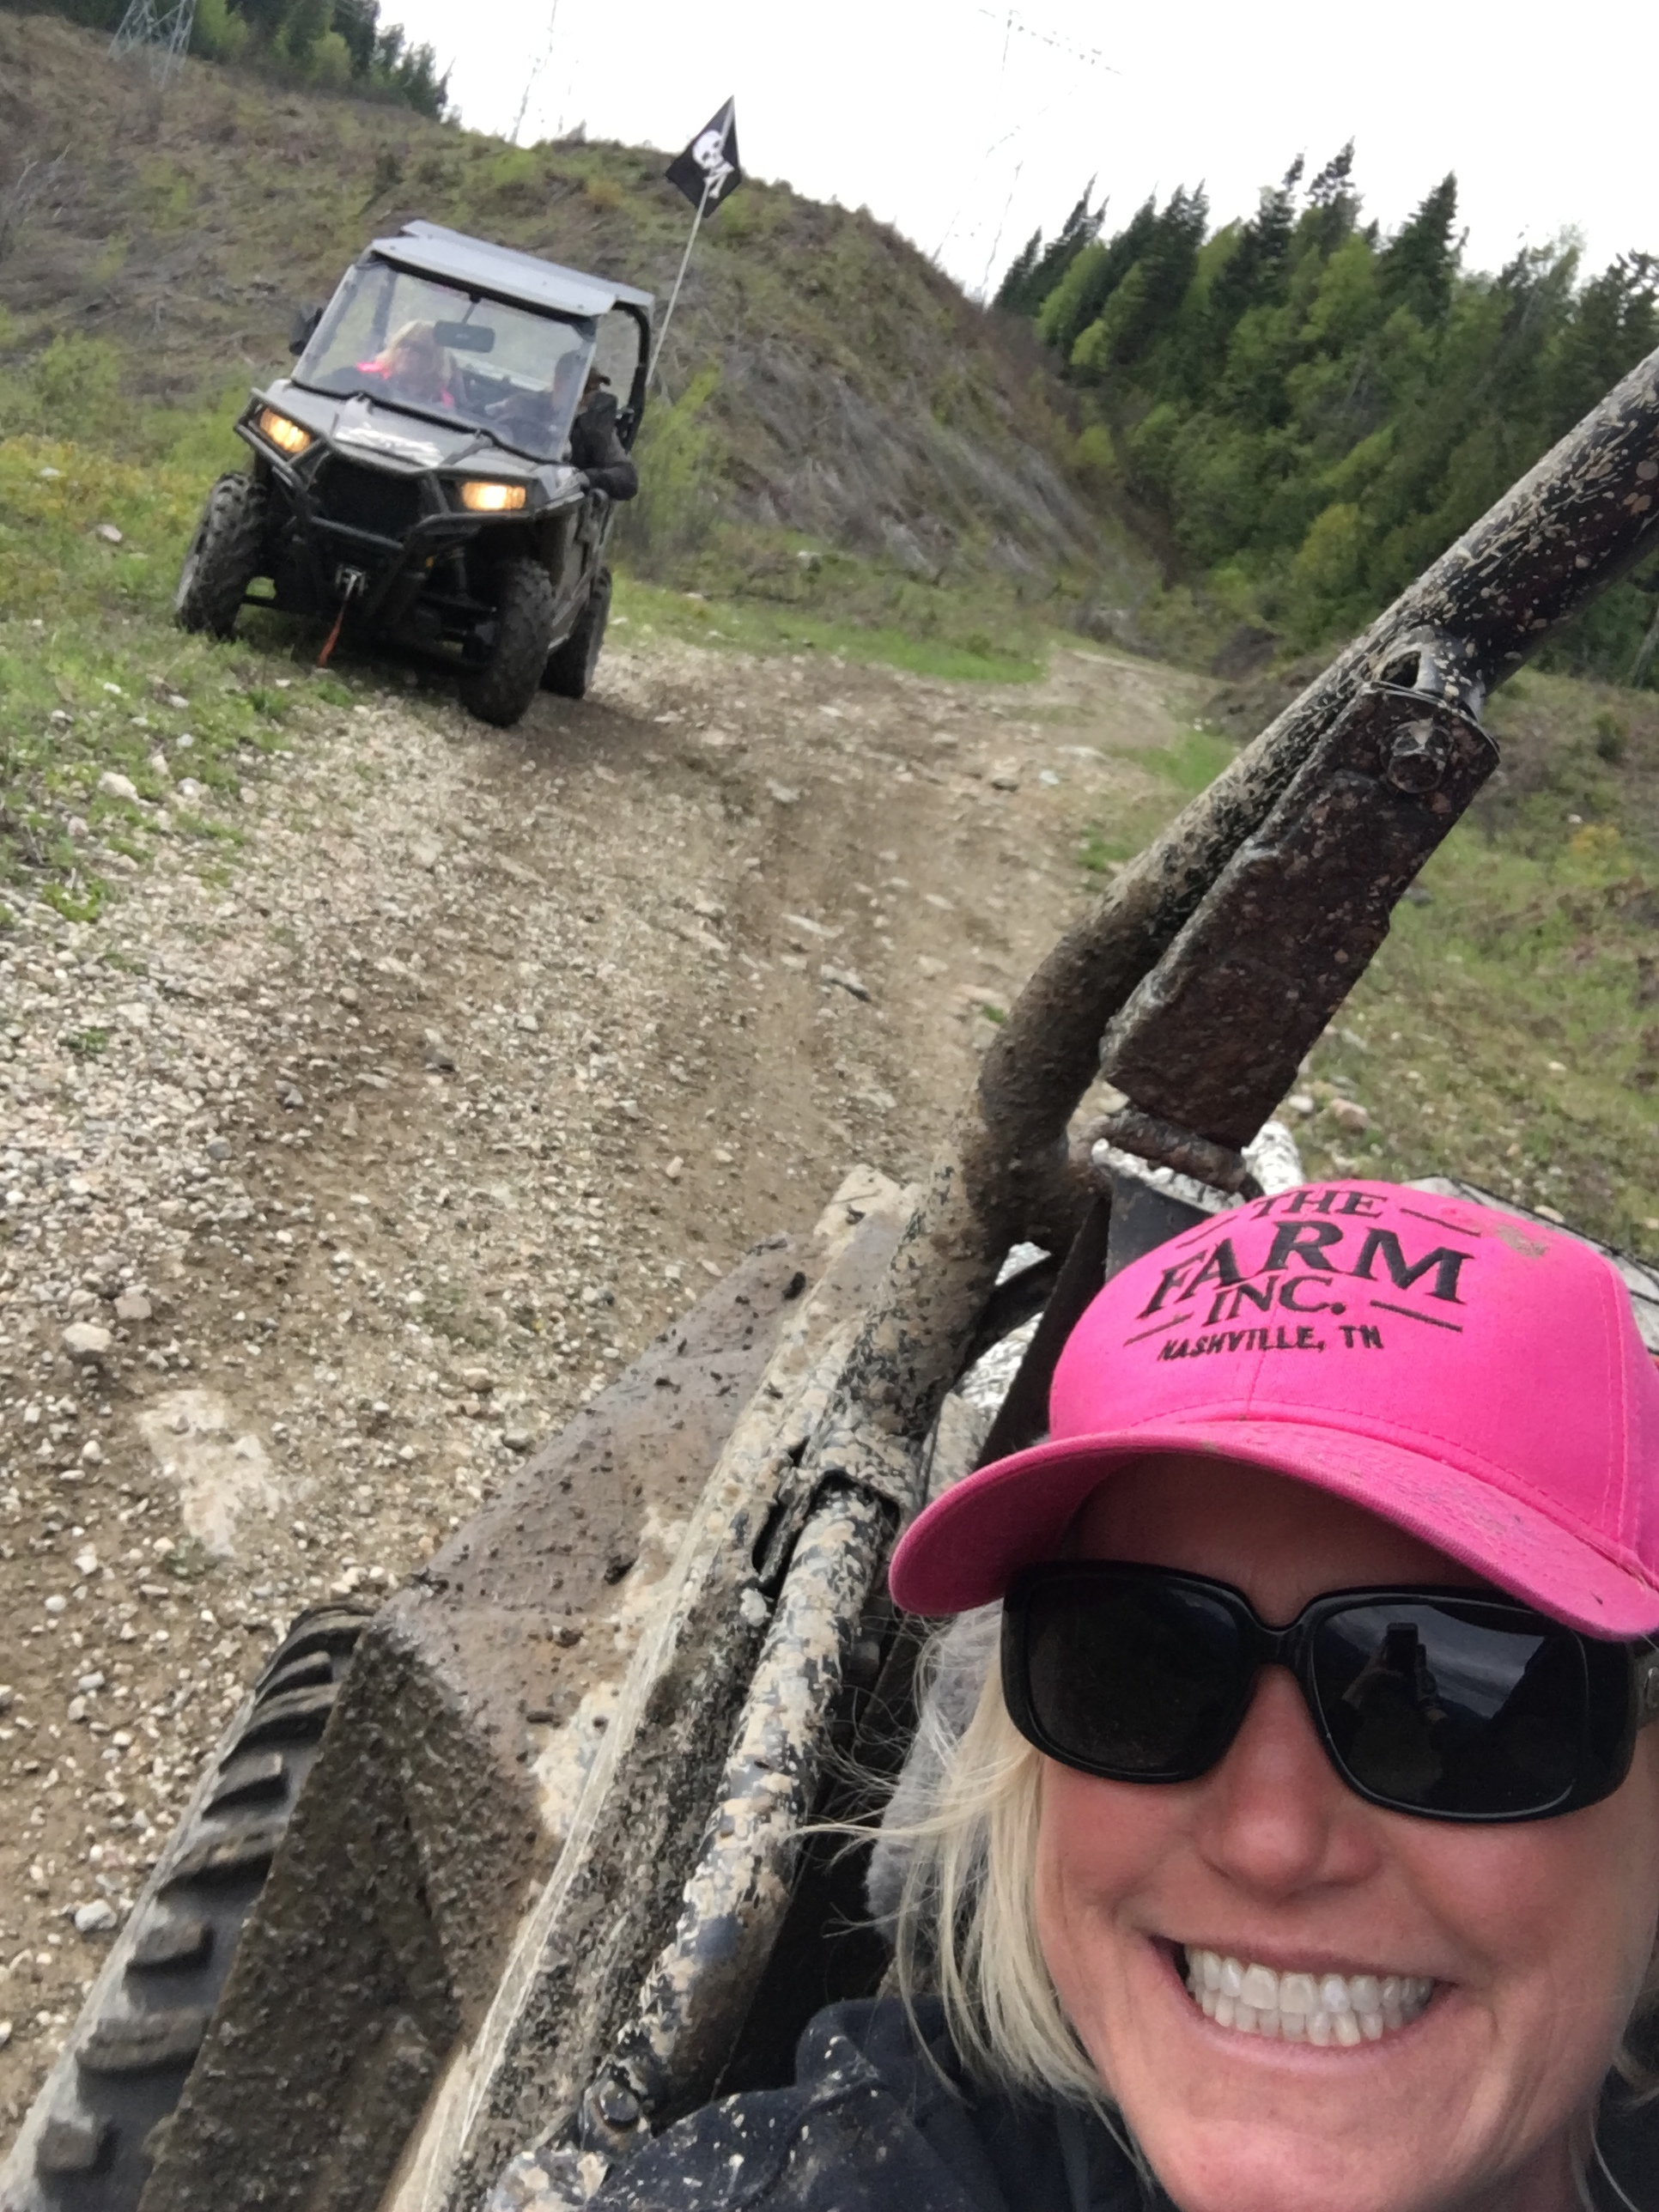 We went on an annual off road ride with the Trail Blazers. Our friends, Lance and Stacey are behind us.